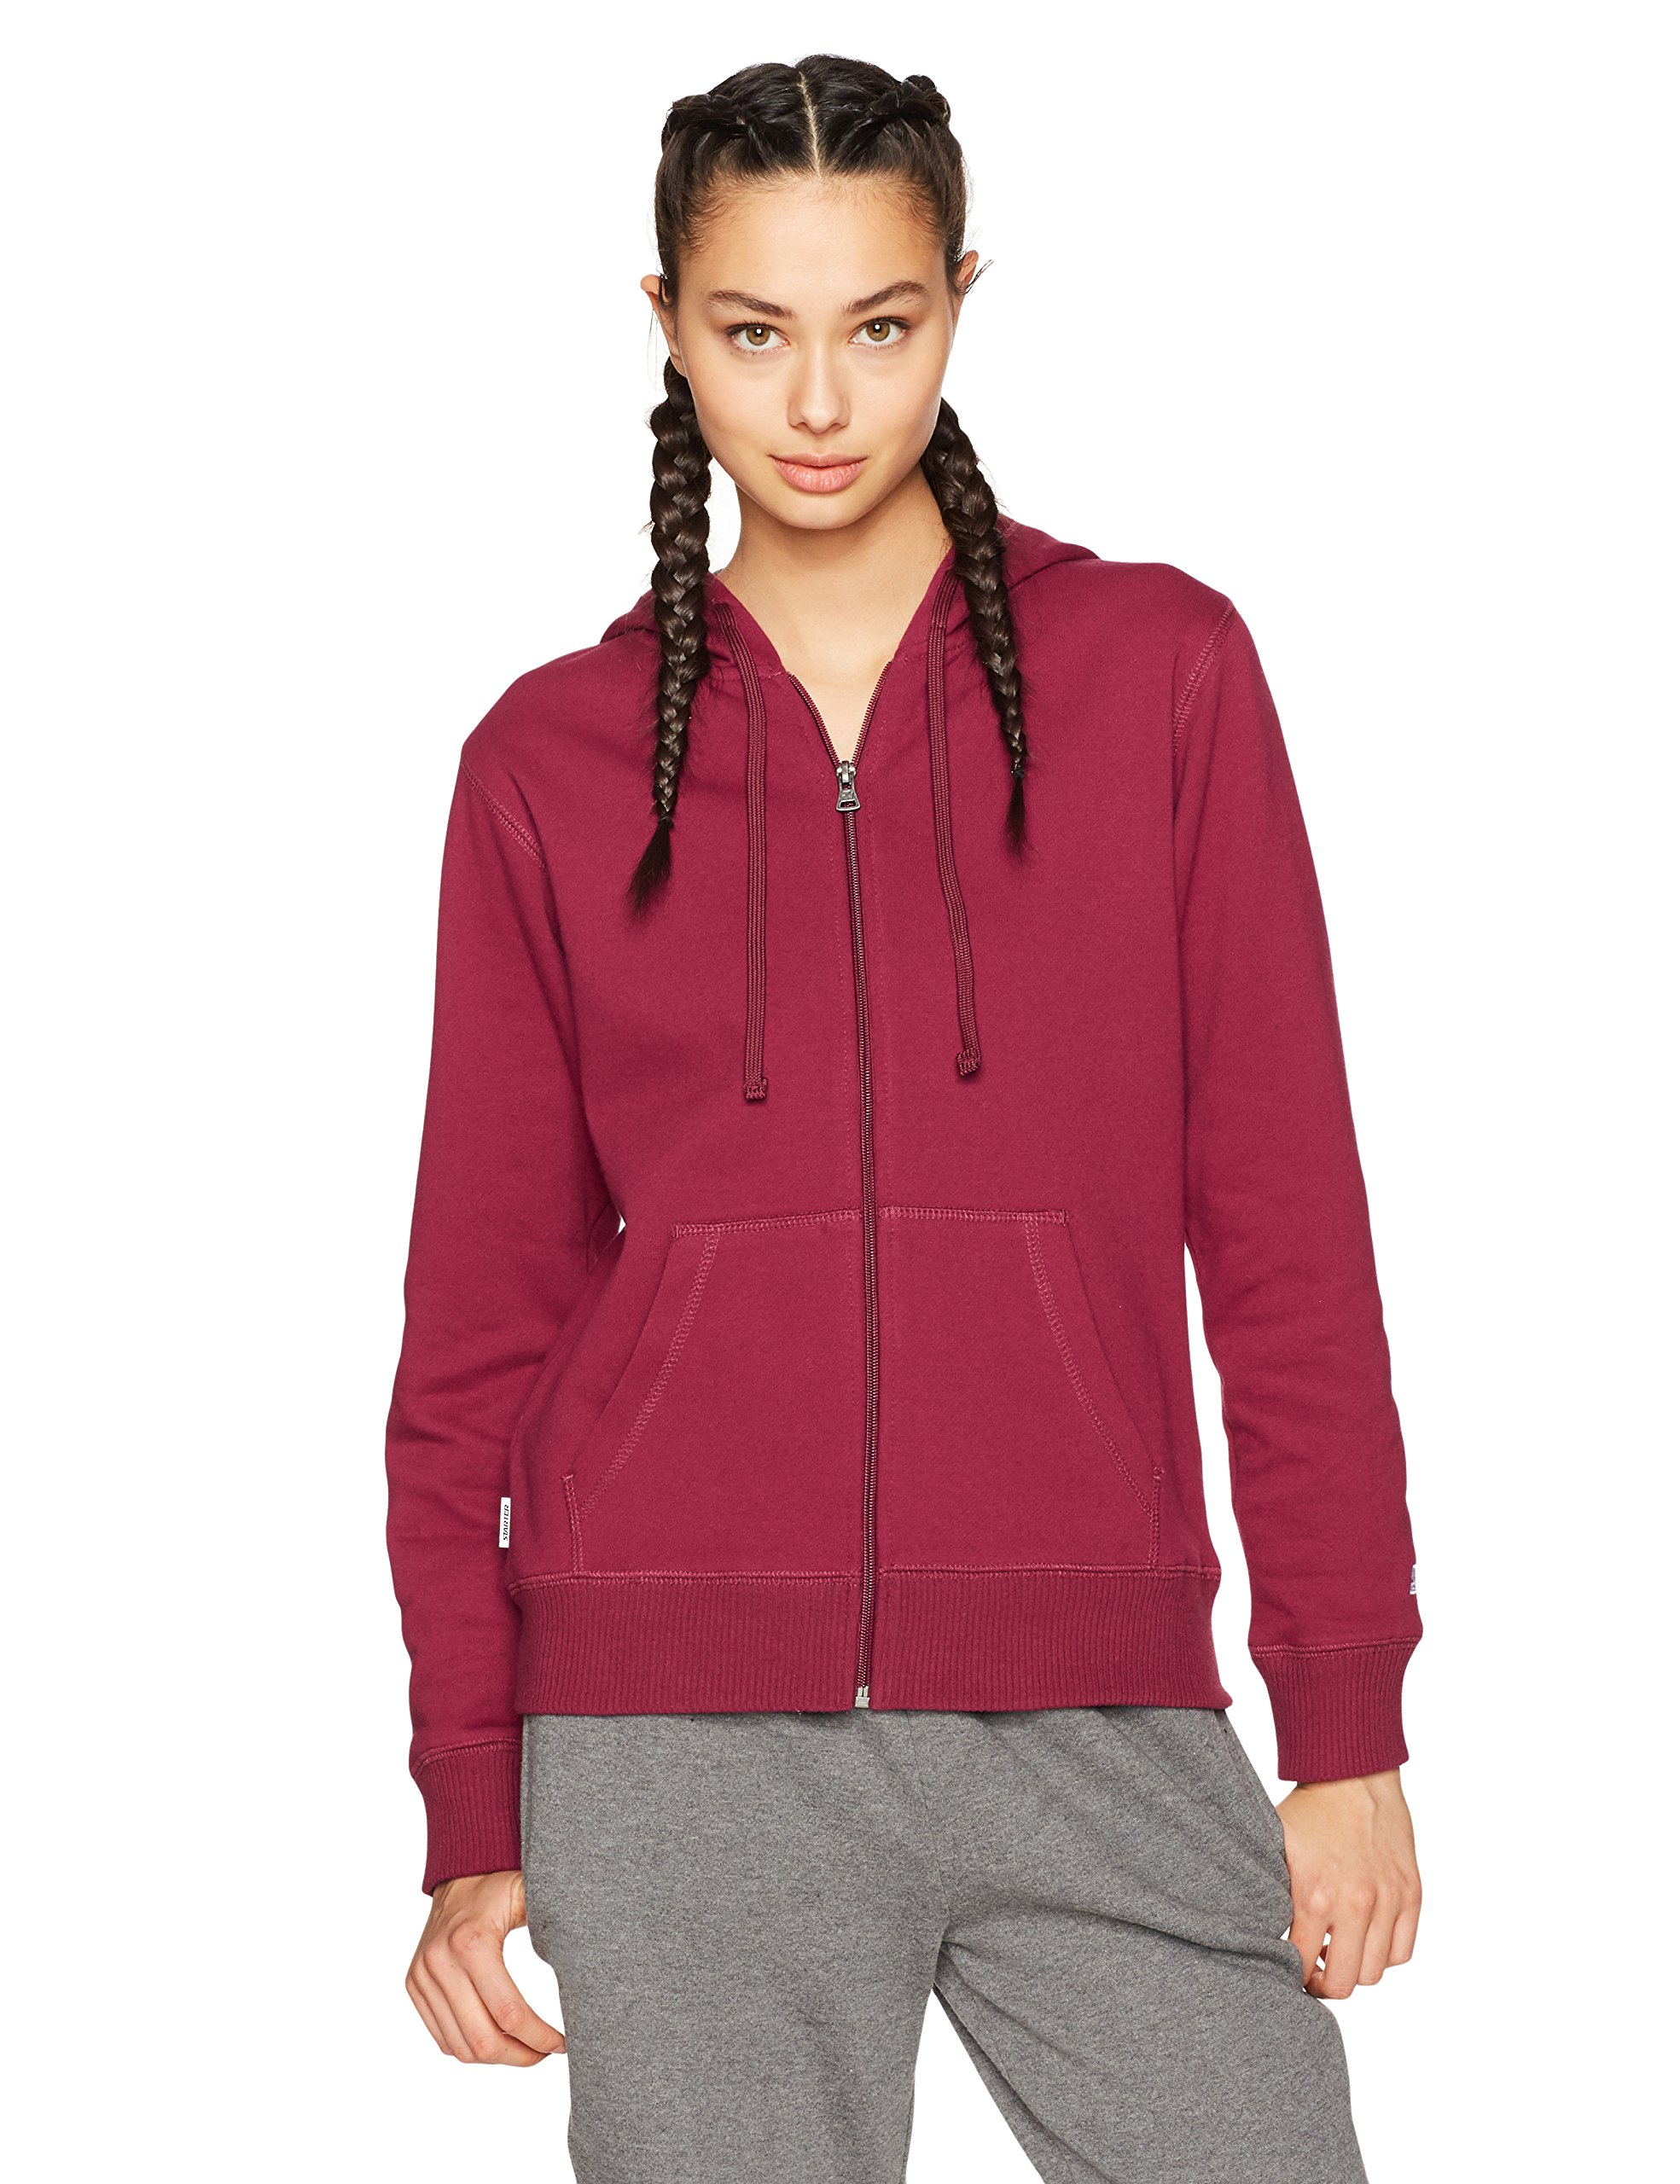 Starter Women's Zip-up Hoodie, Prime Exclusive, Team Maroon, Medium